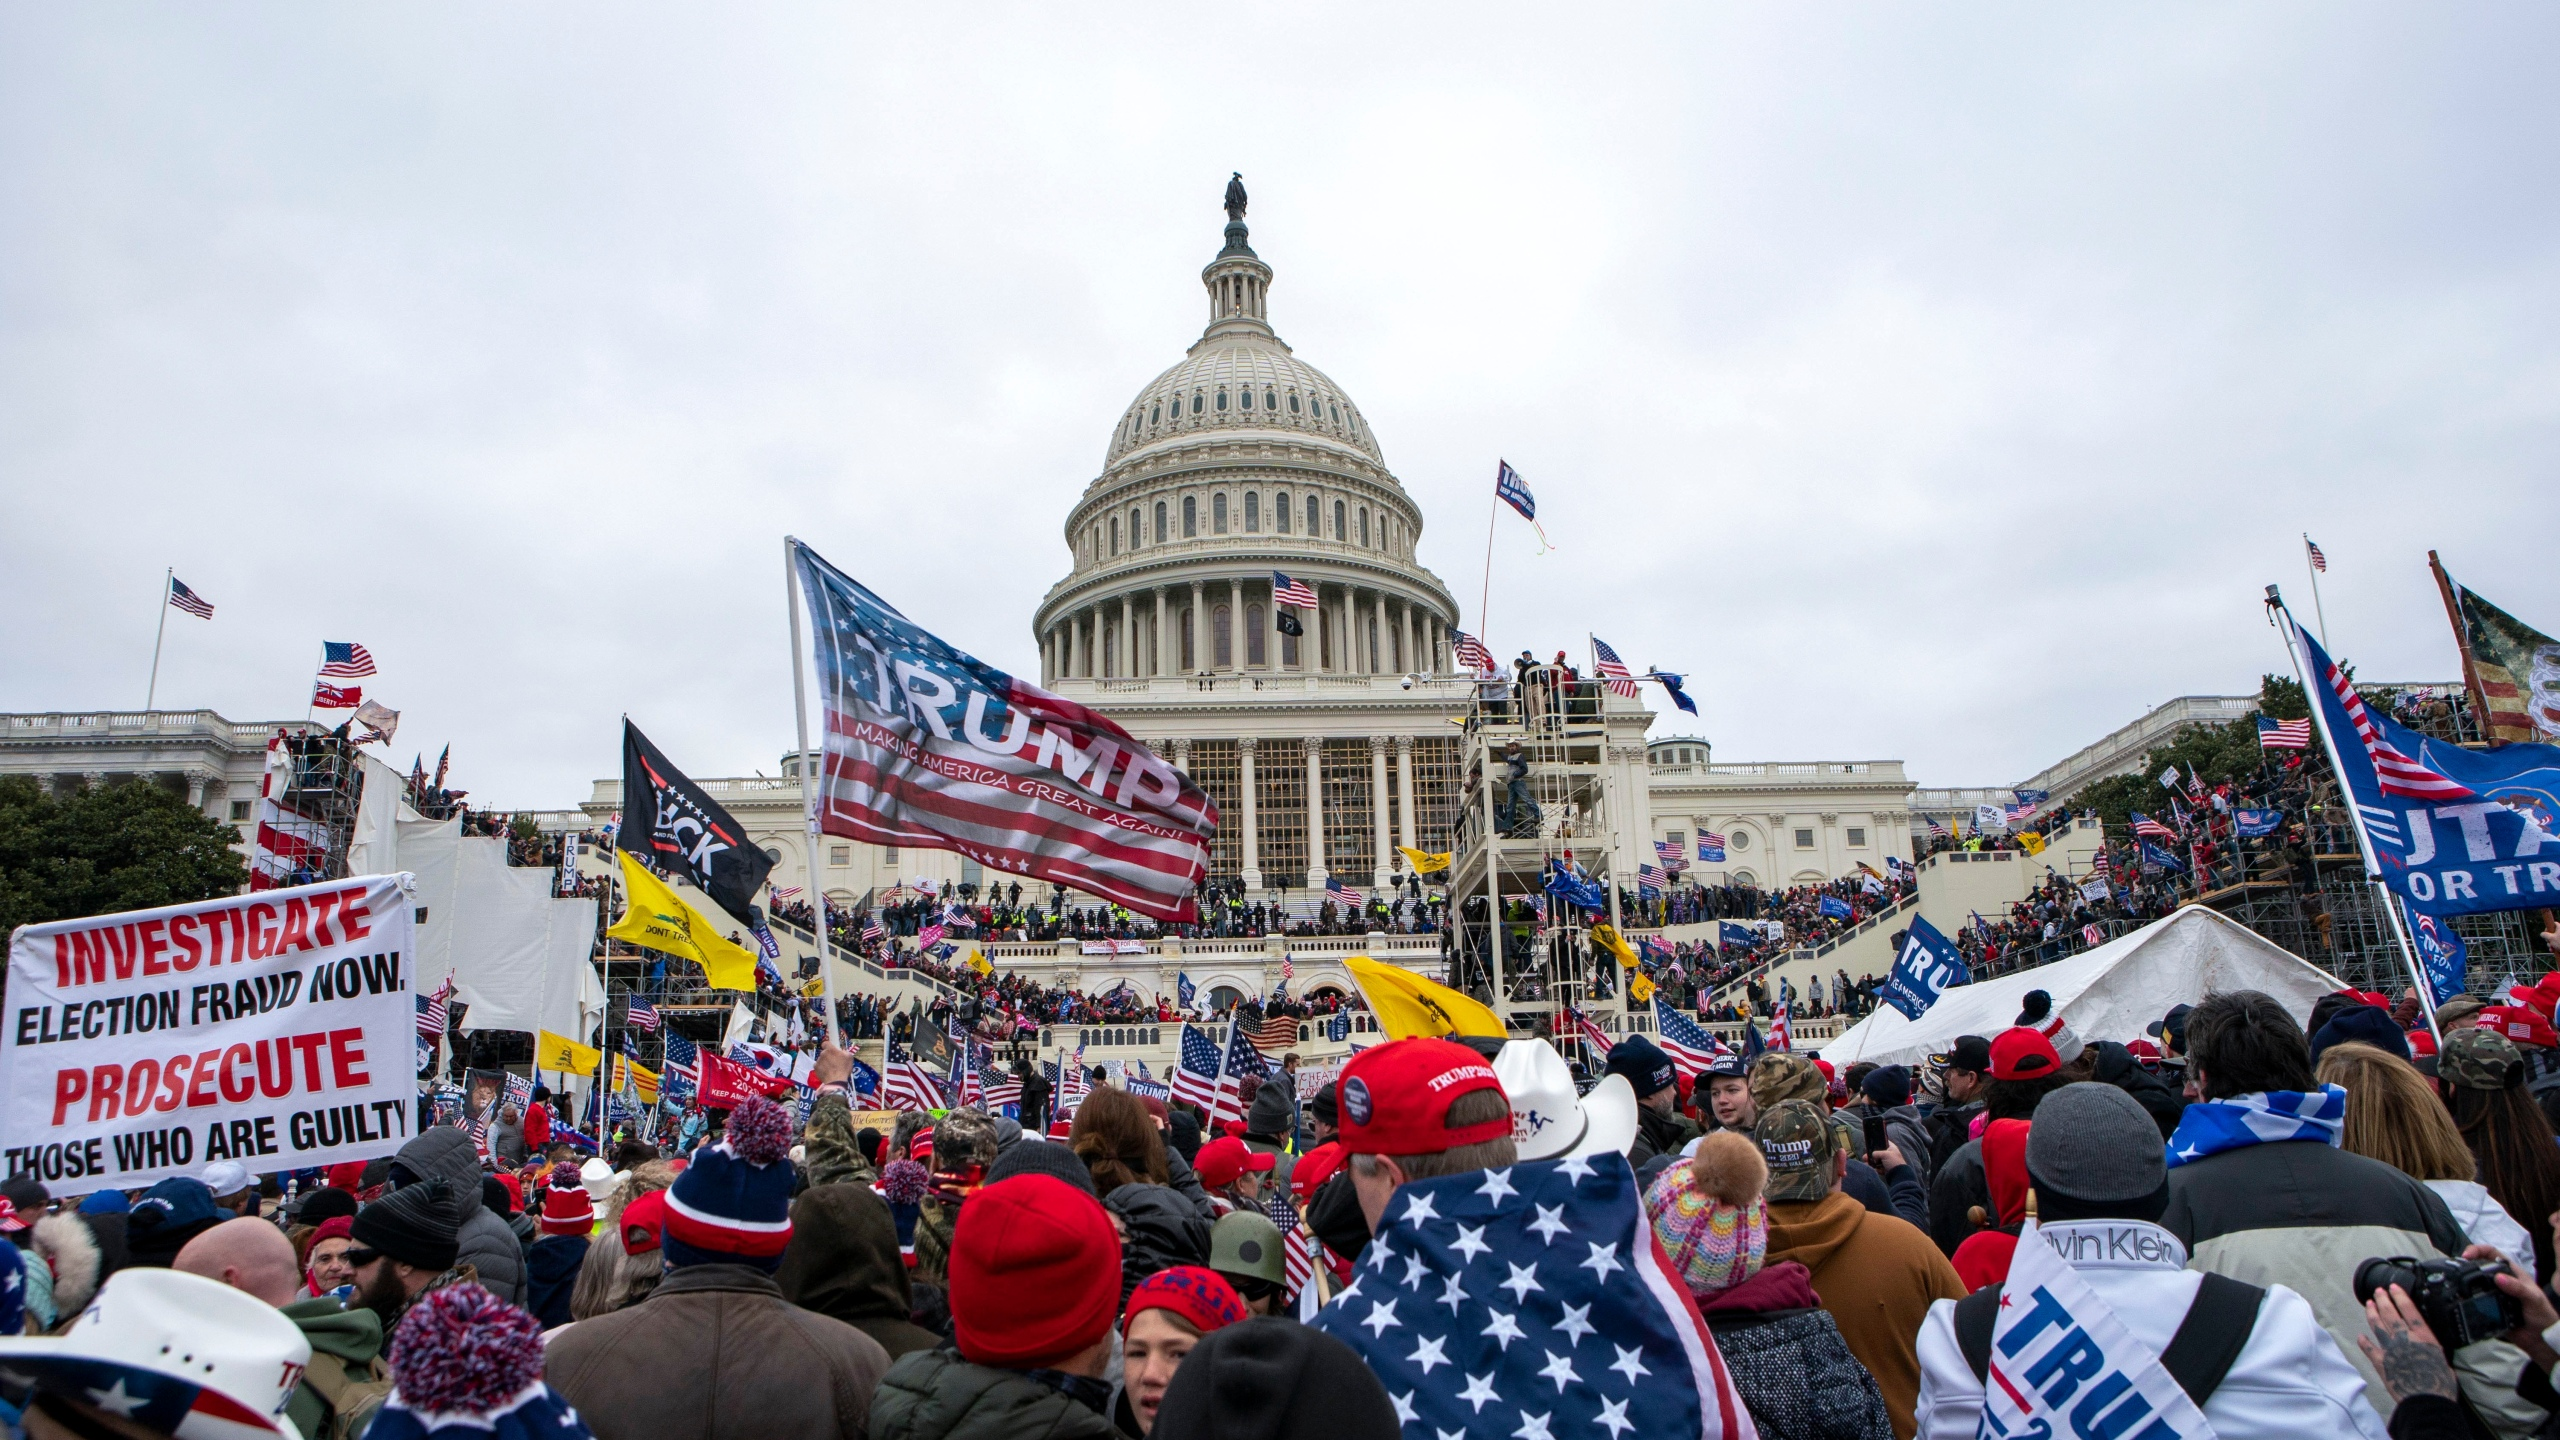 In this Jan. 6, 2021, file photo insurrections loyal to President Donald Trump rally at the U.S. Capitol in Washington. A federal judge held the director of the District of Columbia's Department of Corrections and the warden of the city's jail in contempt of court on Wednesday, Oct. 13, and asked the Justice Department to investigate whether the civil rights of inmates are being abused. U.S. District Judge Royce Lamberth had hauled the jail officials into court as part of the criminal case into Christopher Worrell, a member of the Proud Boys who has been charged in the Jan. 6 attack at the U.S. Capitol. (AP Photo/Jose Luis Magana, File)